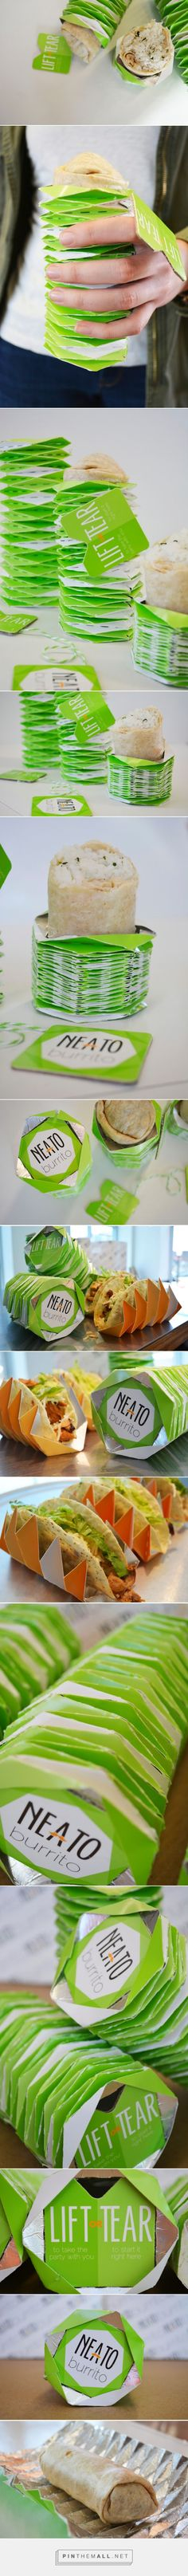 Neato #Burrito #concept #packaging designed by Kelsey Byrd, Haley Ellis, Marcus Mrazeck, Elizabeth Sweeney - http://www.packagingoftheworld.com/2015/04/neato-burrito-student-project.html                                                                                                                                                                                 Más